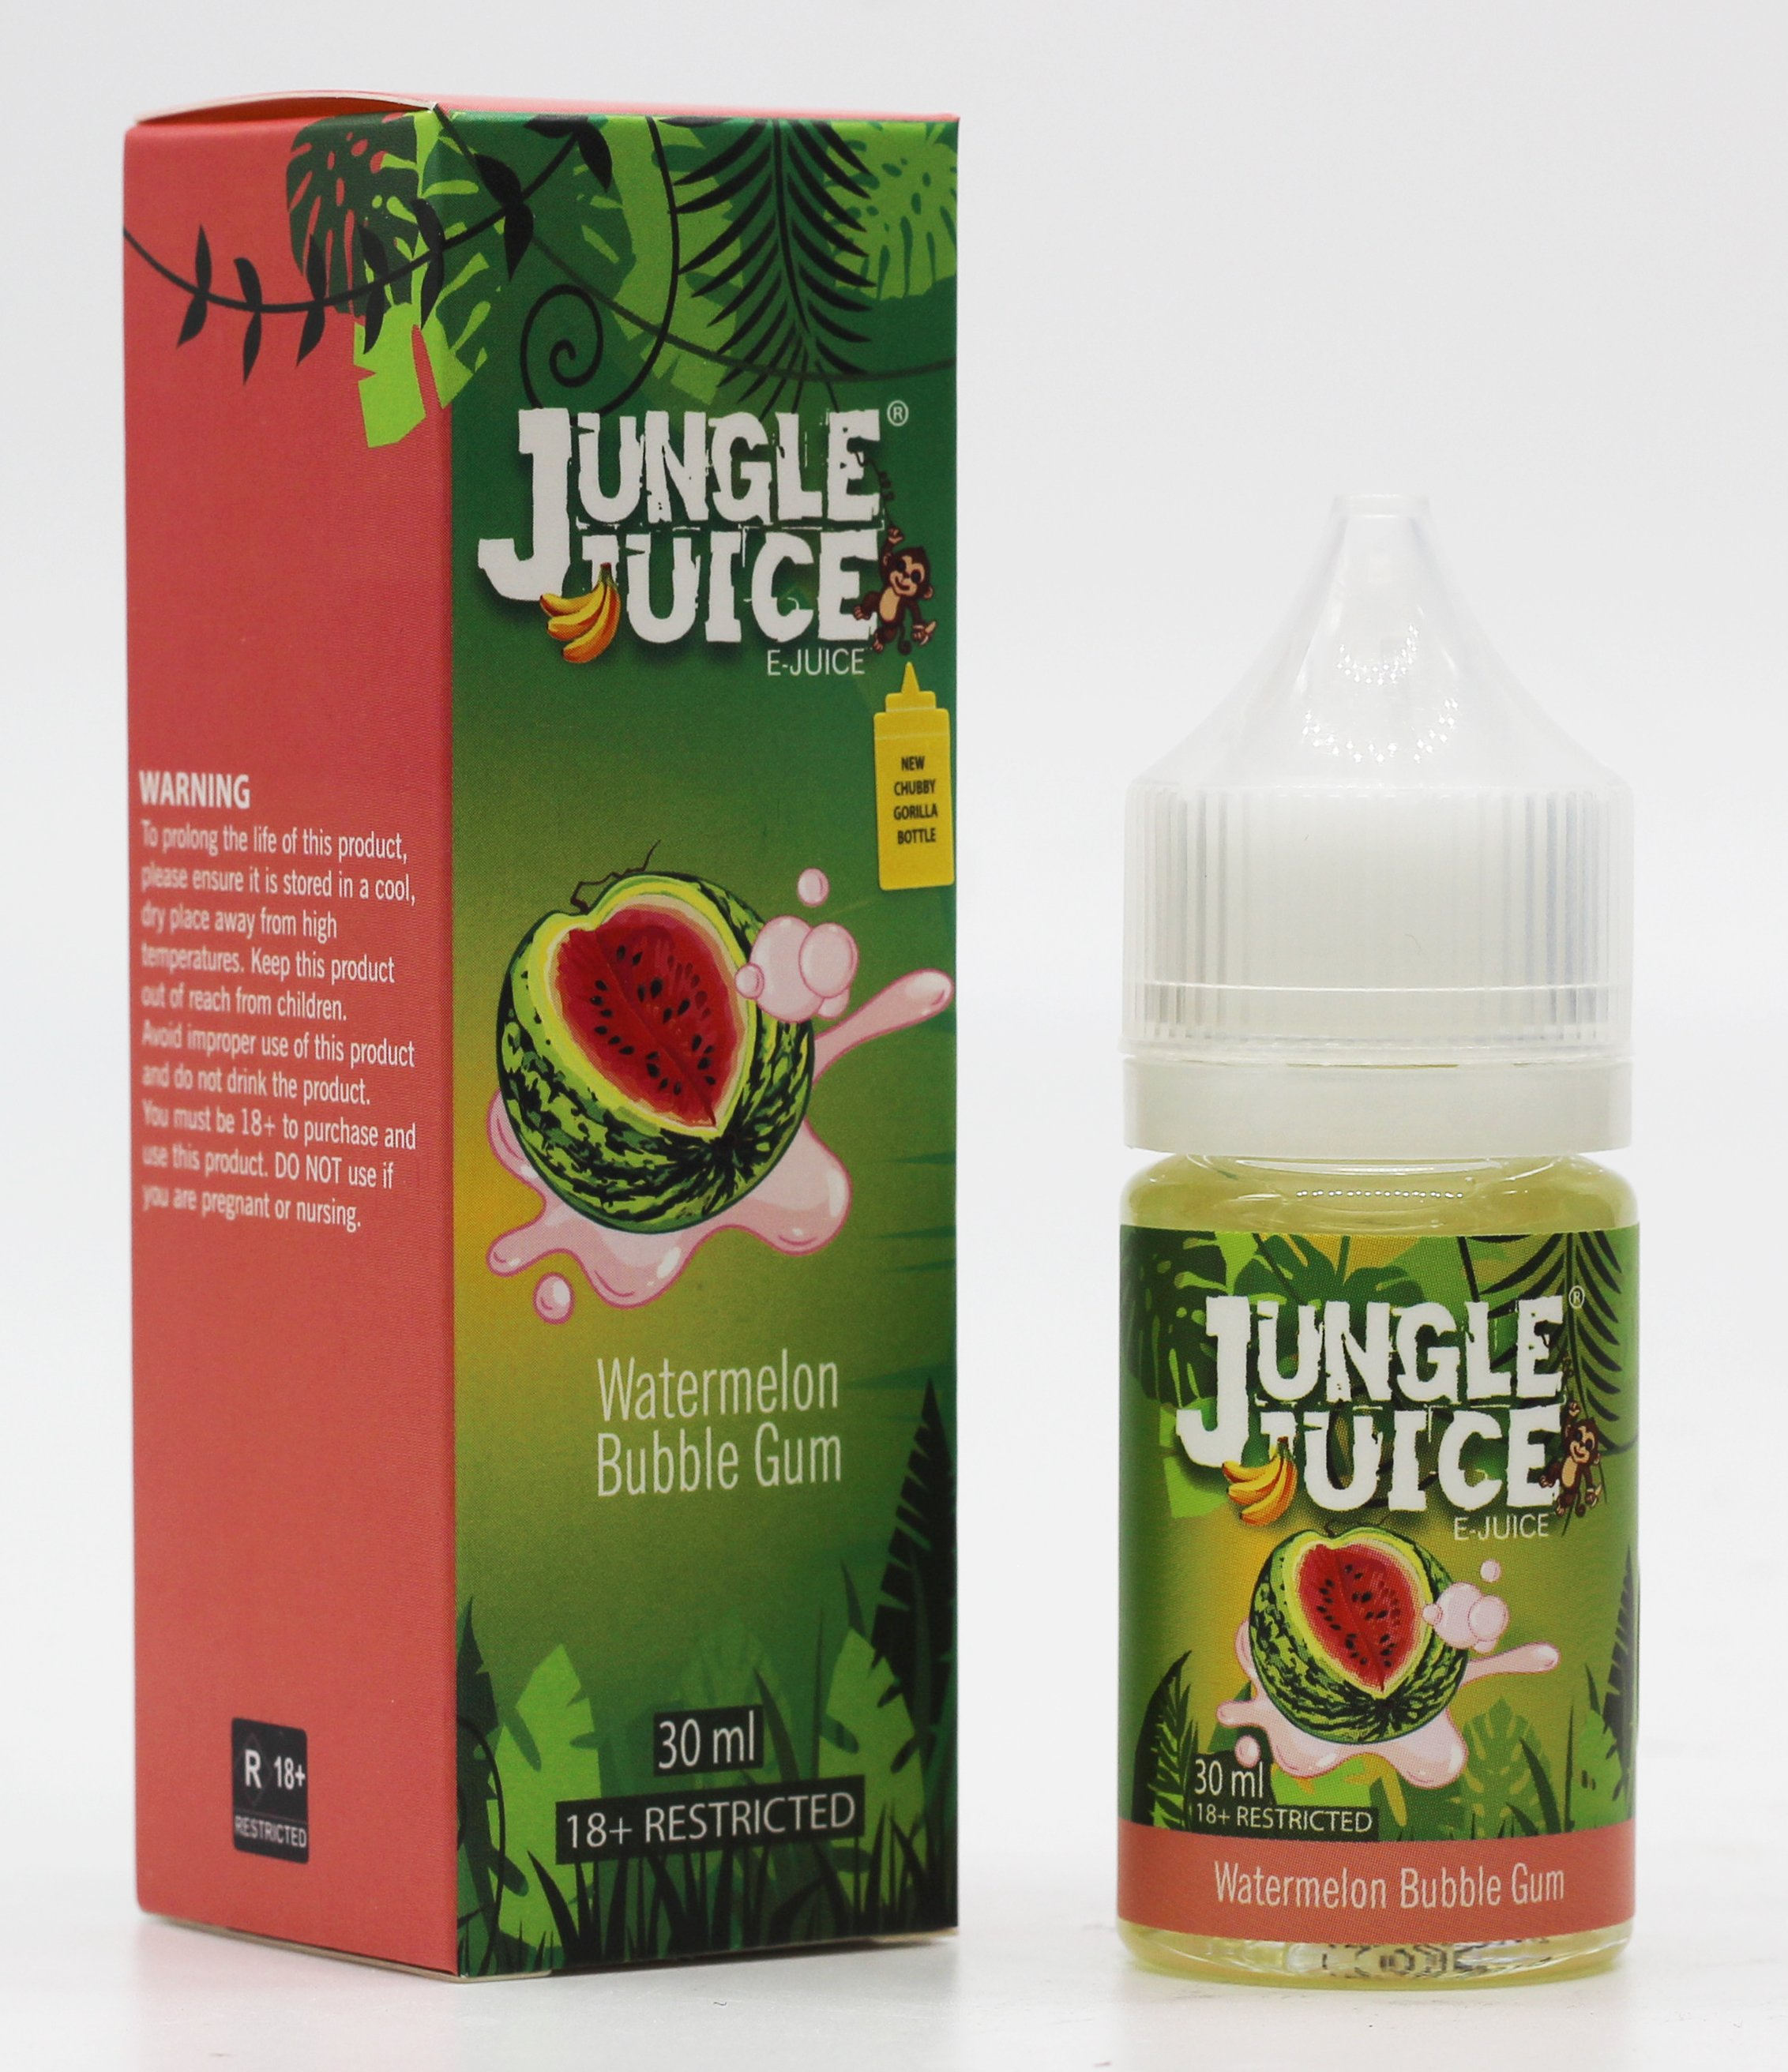 Jungle Juice 70%VG E-juice - Watermelon Bubble Gum 30ml